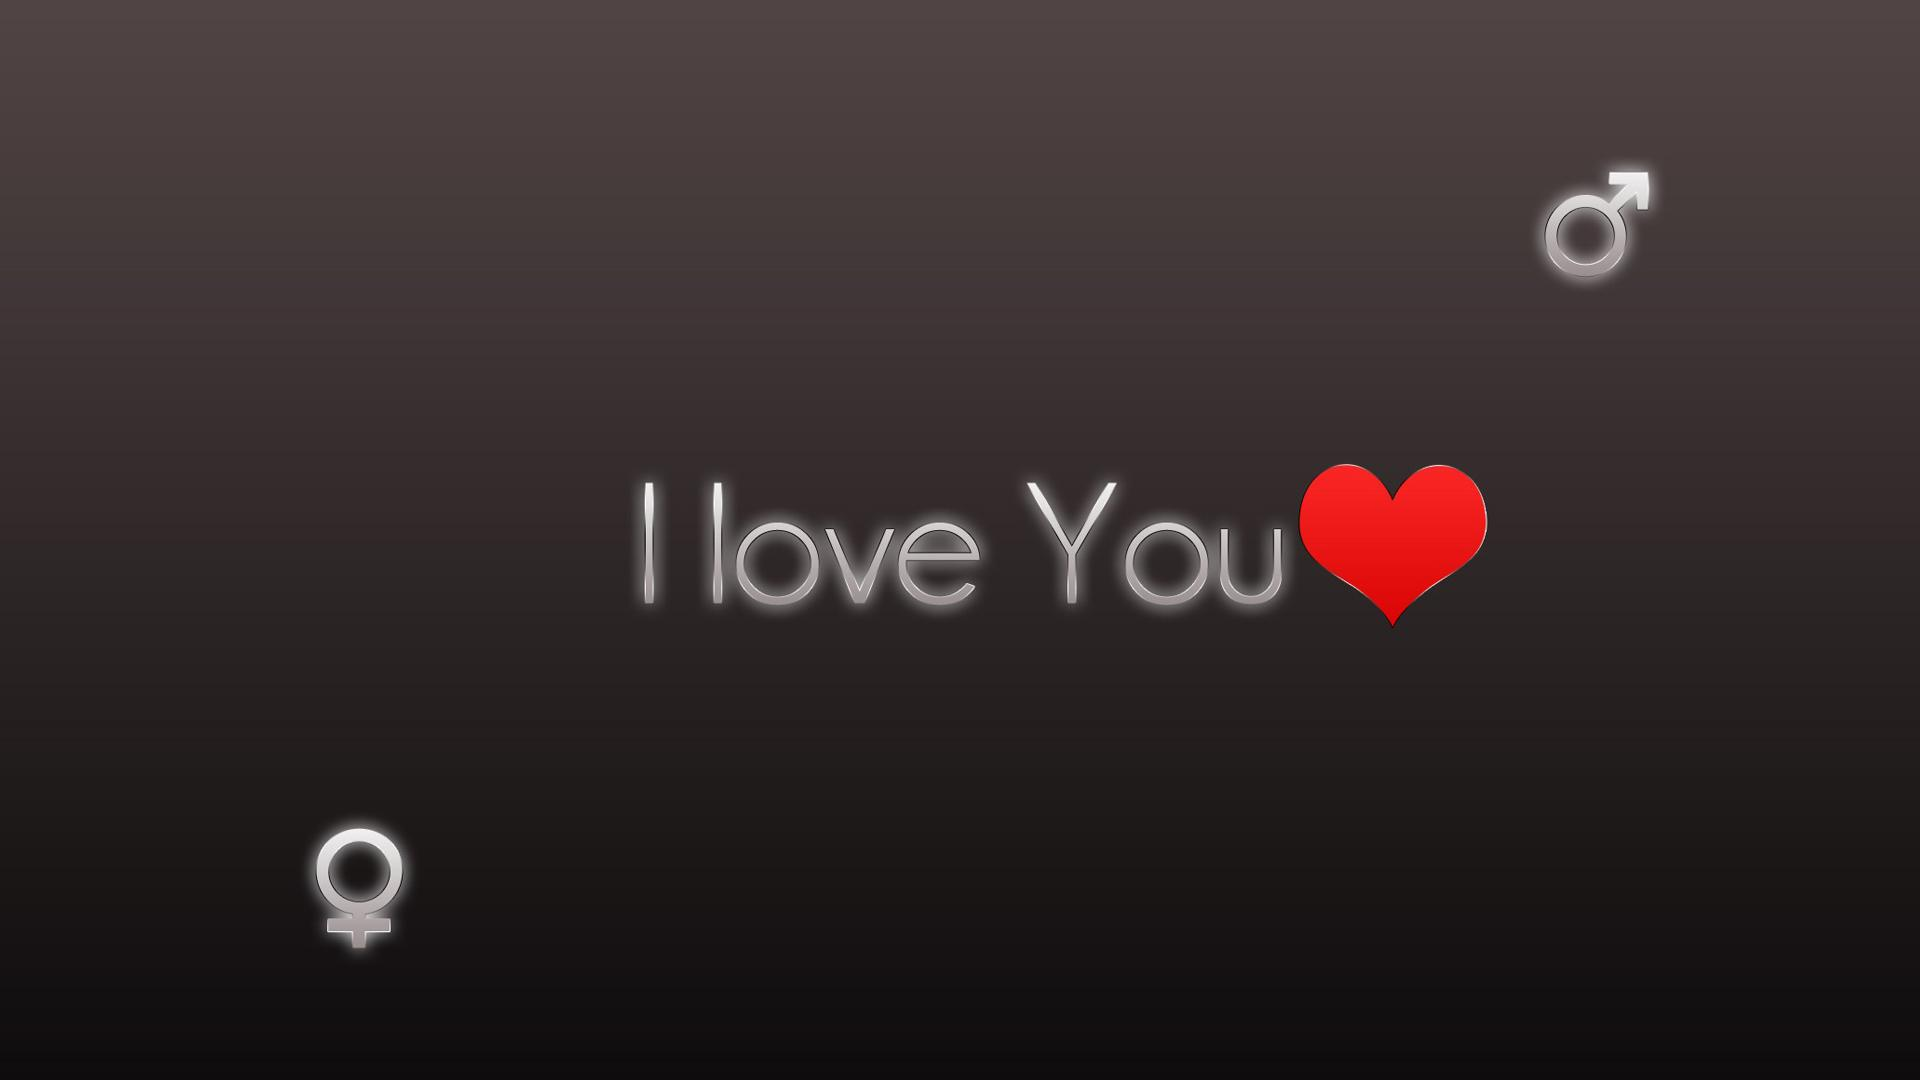 Love Quotes Hd Wallpapers Photos - Love U Simple Quotes - HD Wallpaper